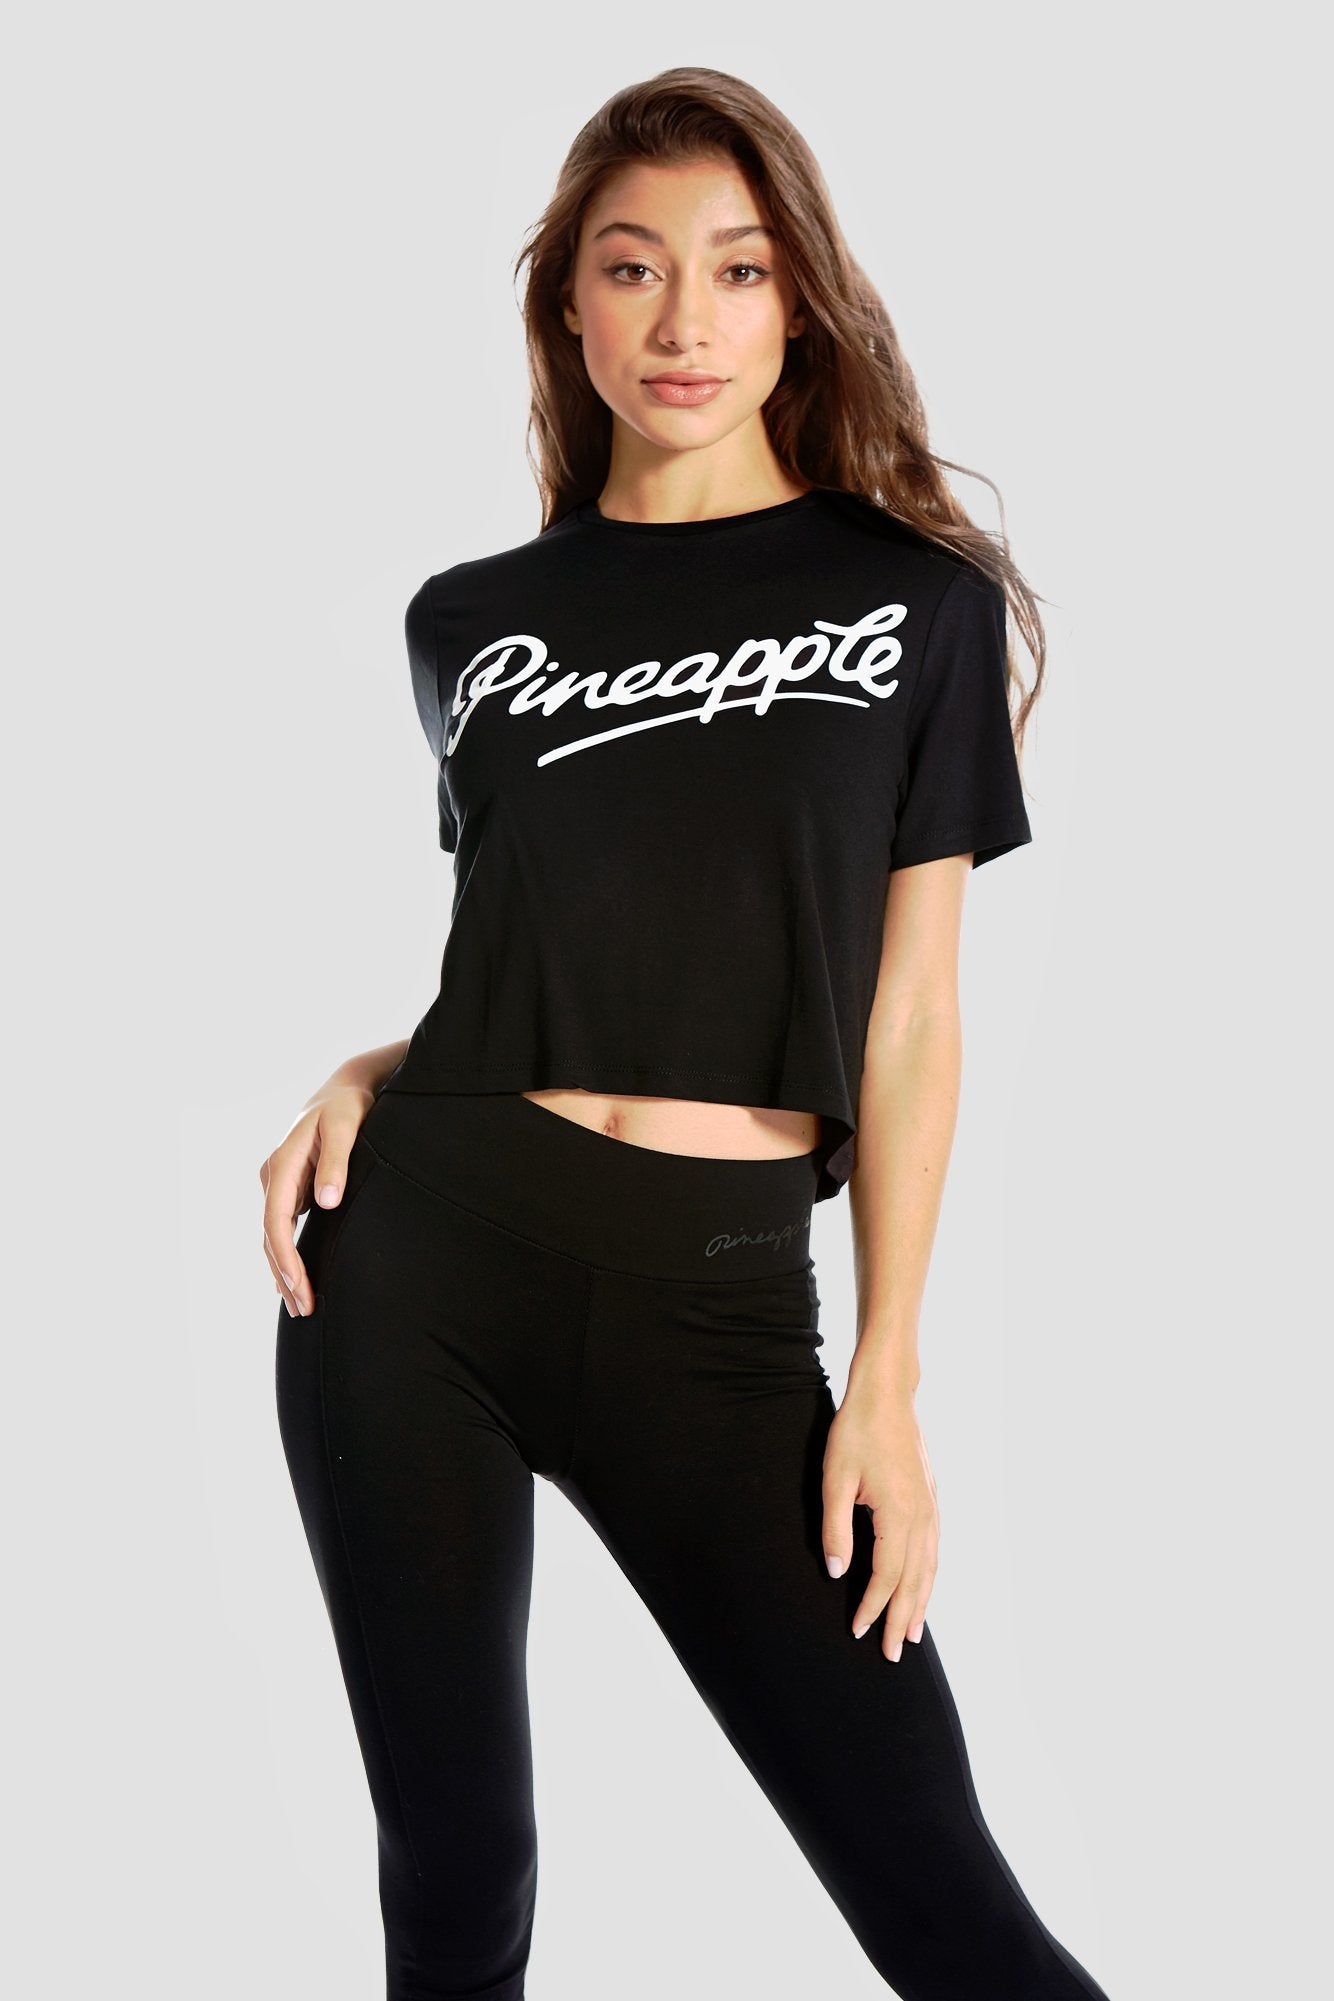 Pineapple Dancewear Women's Black Crop T Shirt